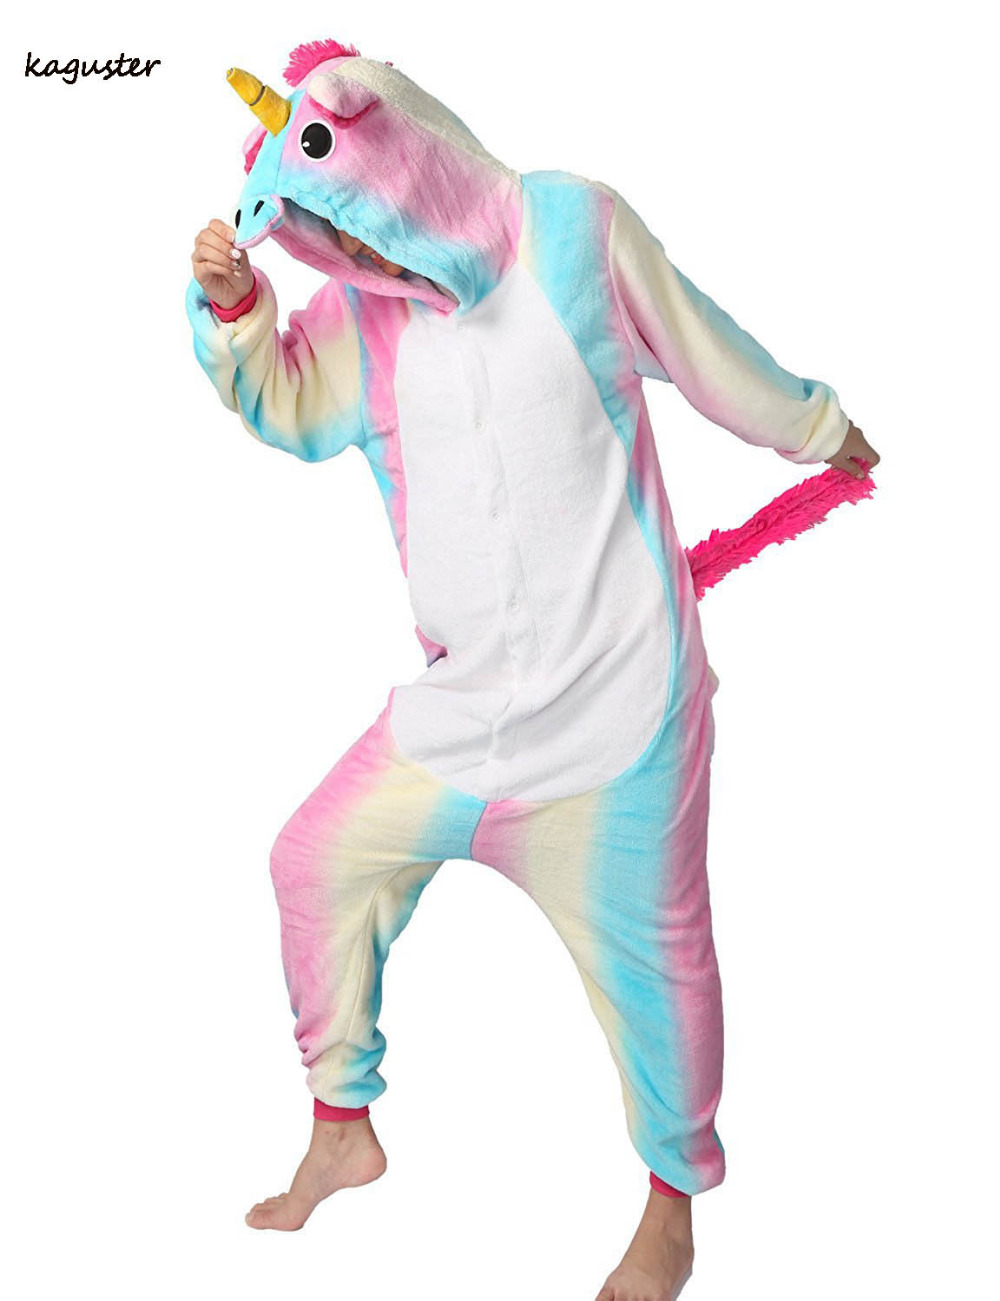 Rainbow Unicorn Onesie Kugurumi Pajamas Sets Halloween Cosplay Christmas Costume Winter Nighte Sleepwear Hooded For Women Men